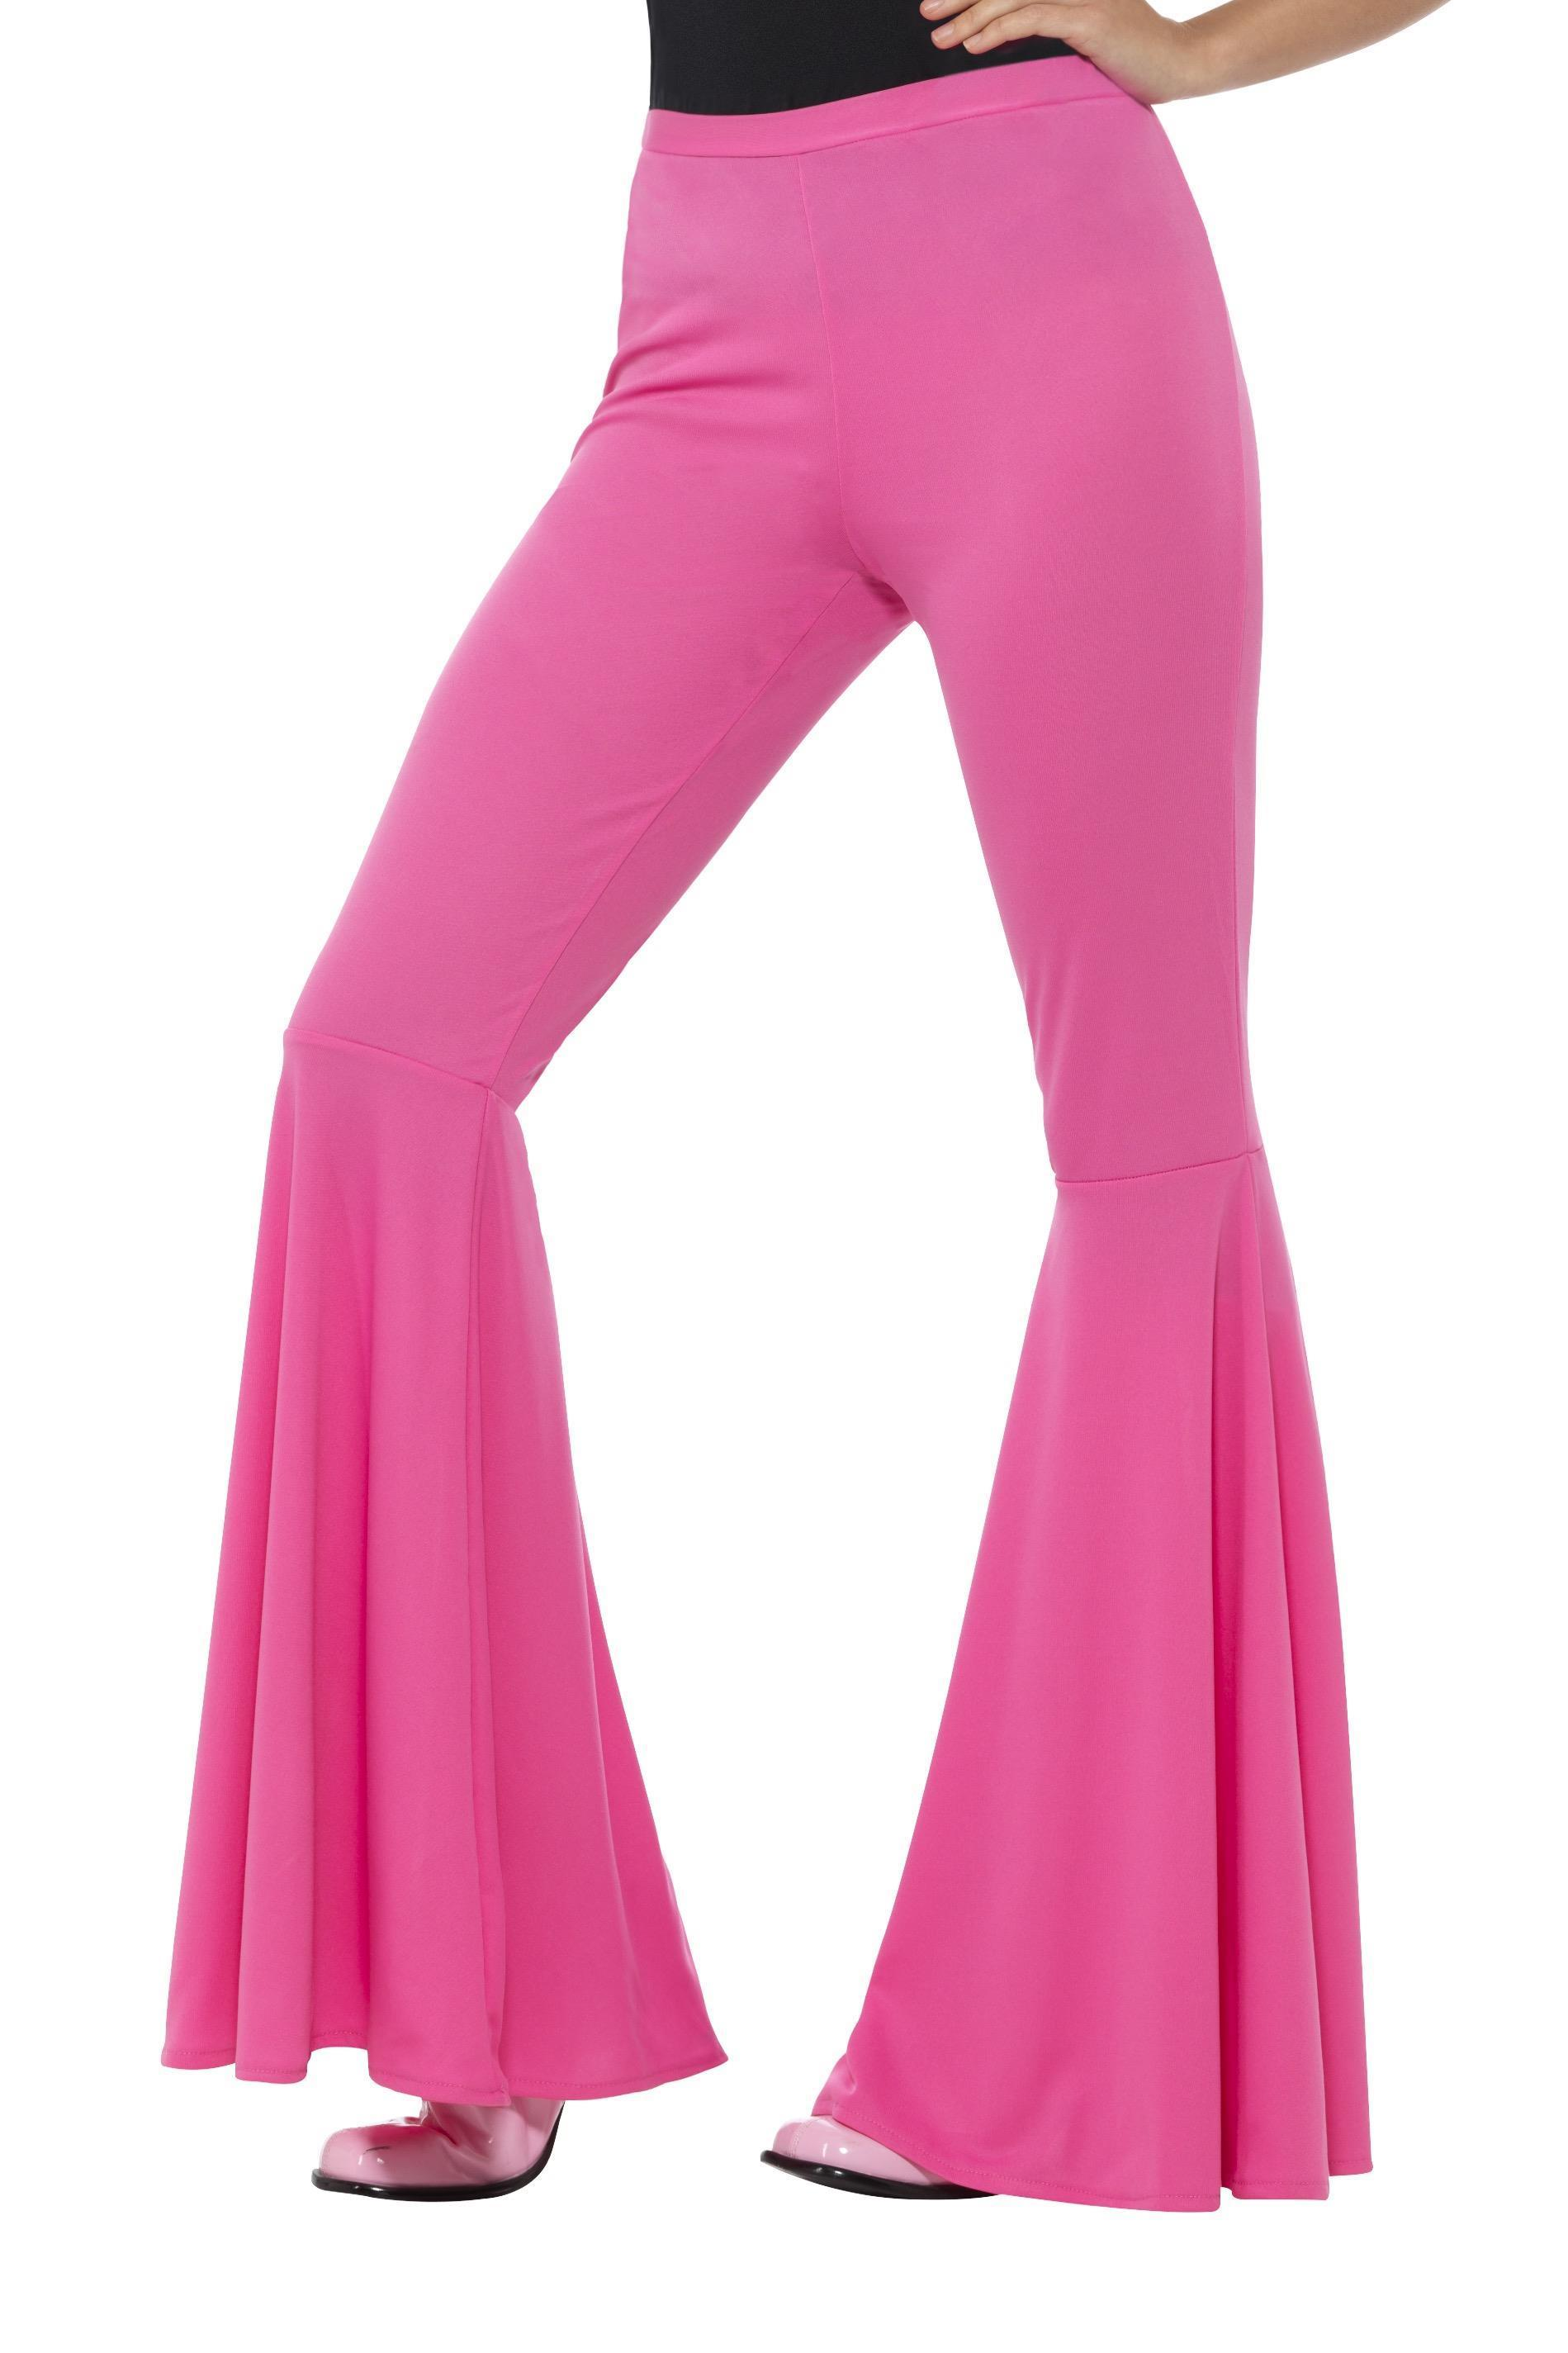 Ladies Flared Trousers Pink